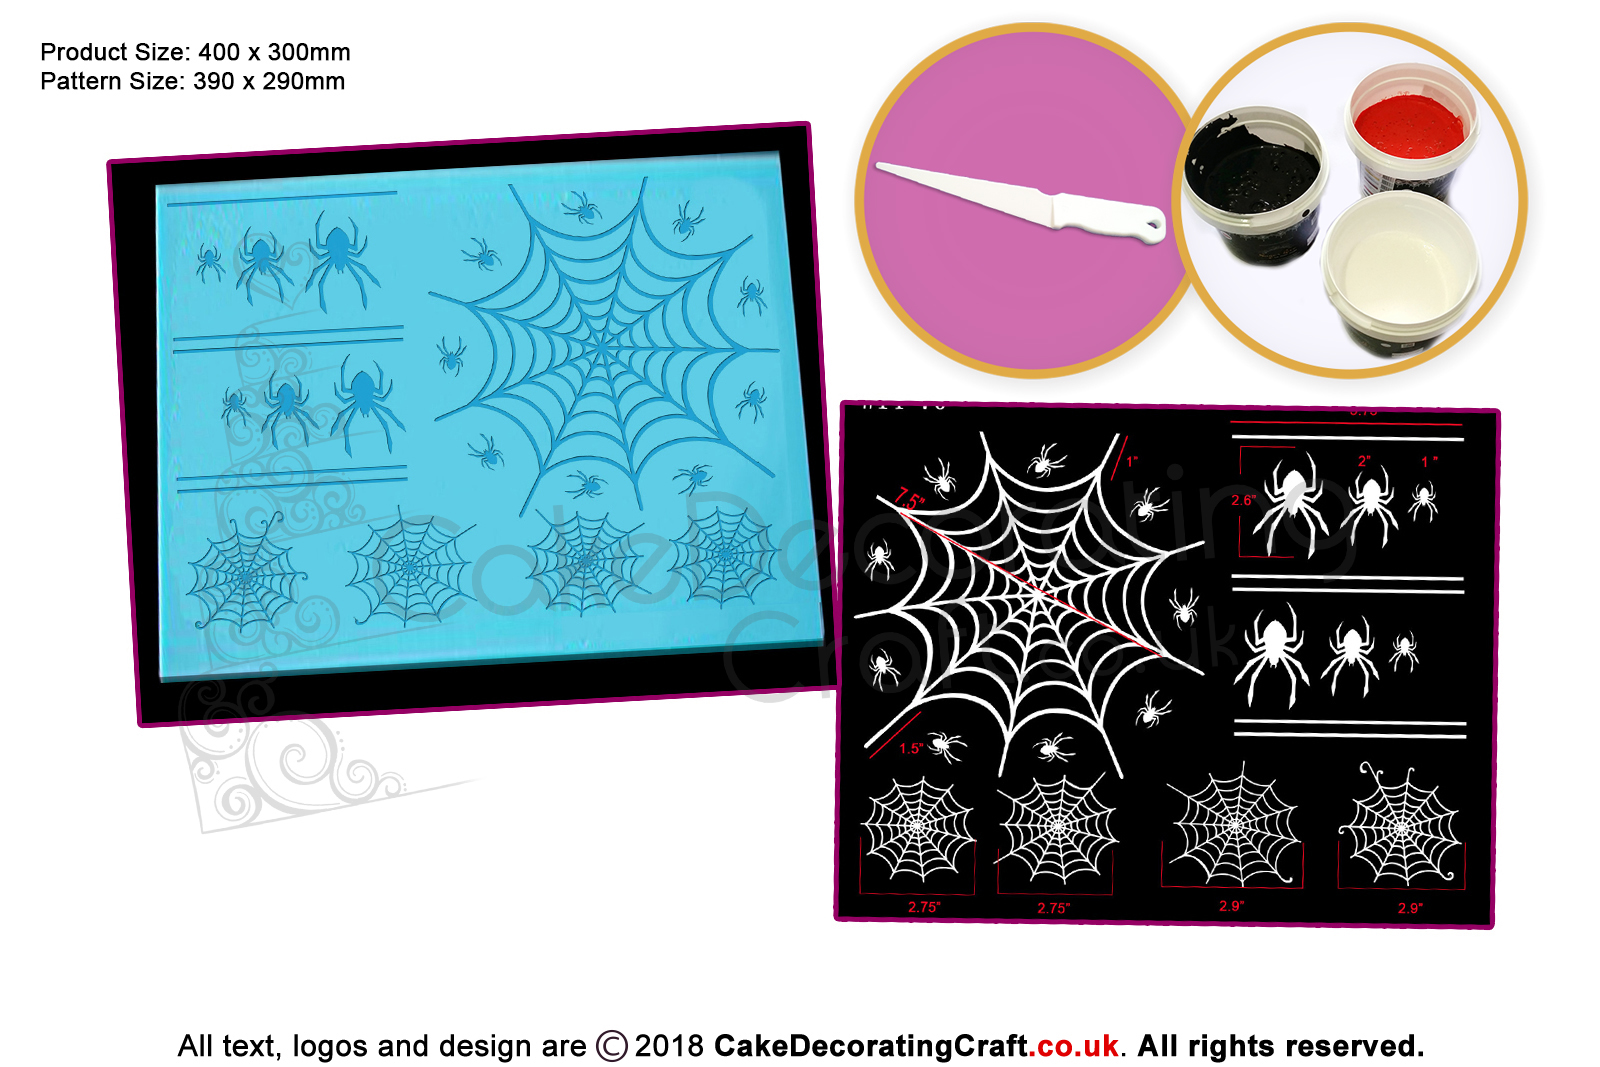 3d Cobweb Cake Lace Mats Cake Decorating Starter Kit Cake